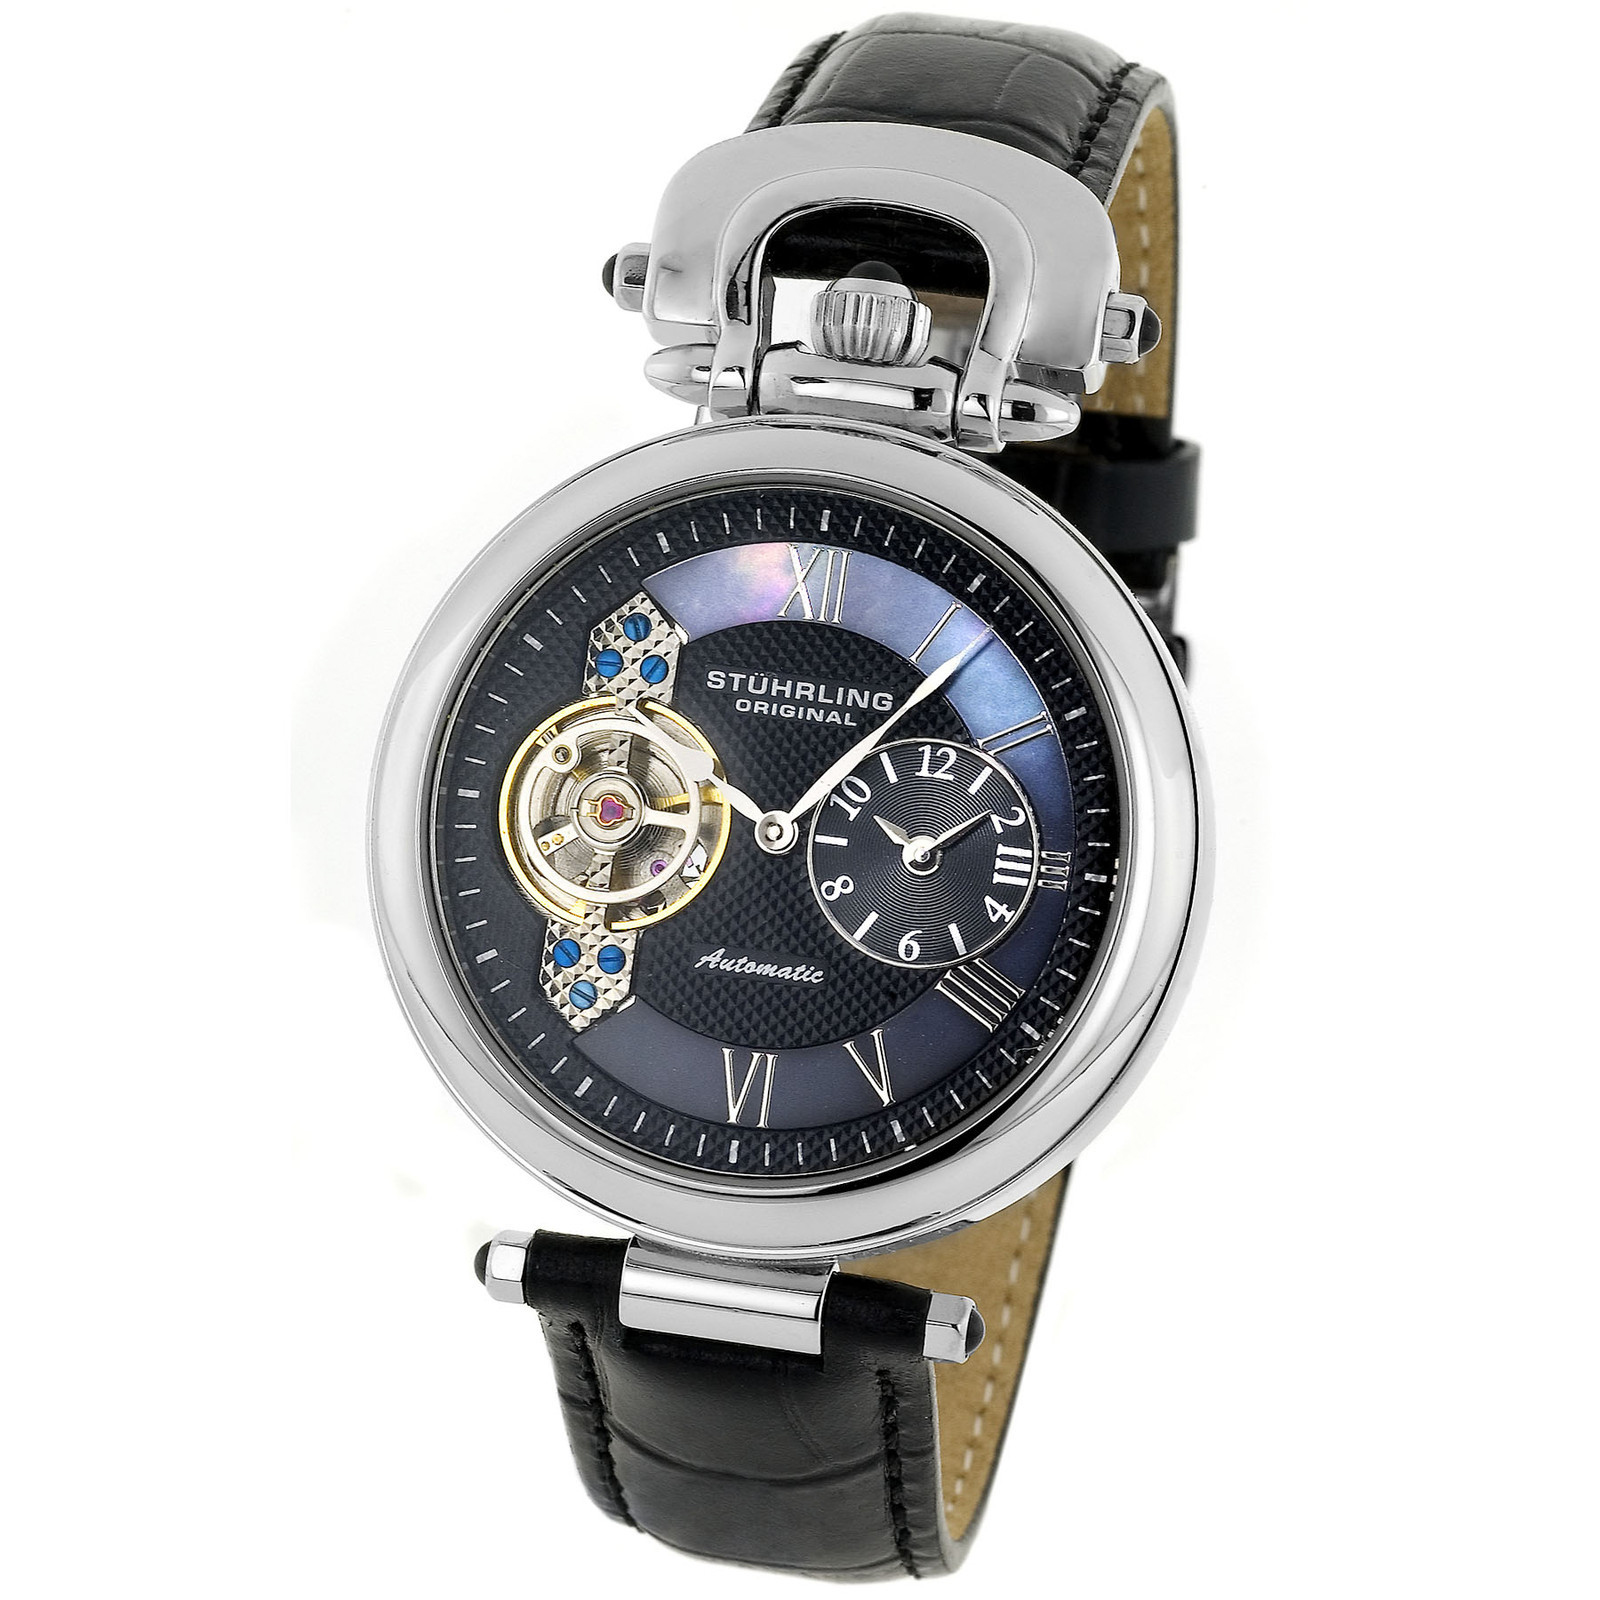 Stuhrling 127 33151 Automatic Dual Time Black Dial Mens Watch